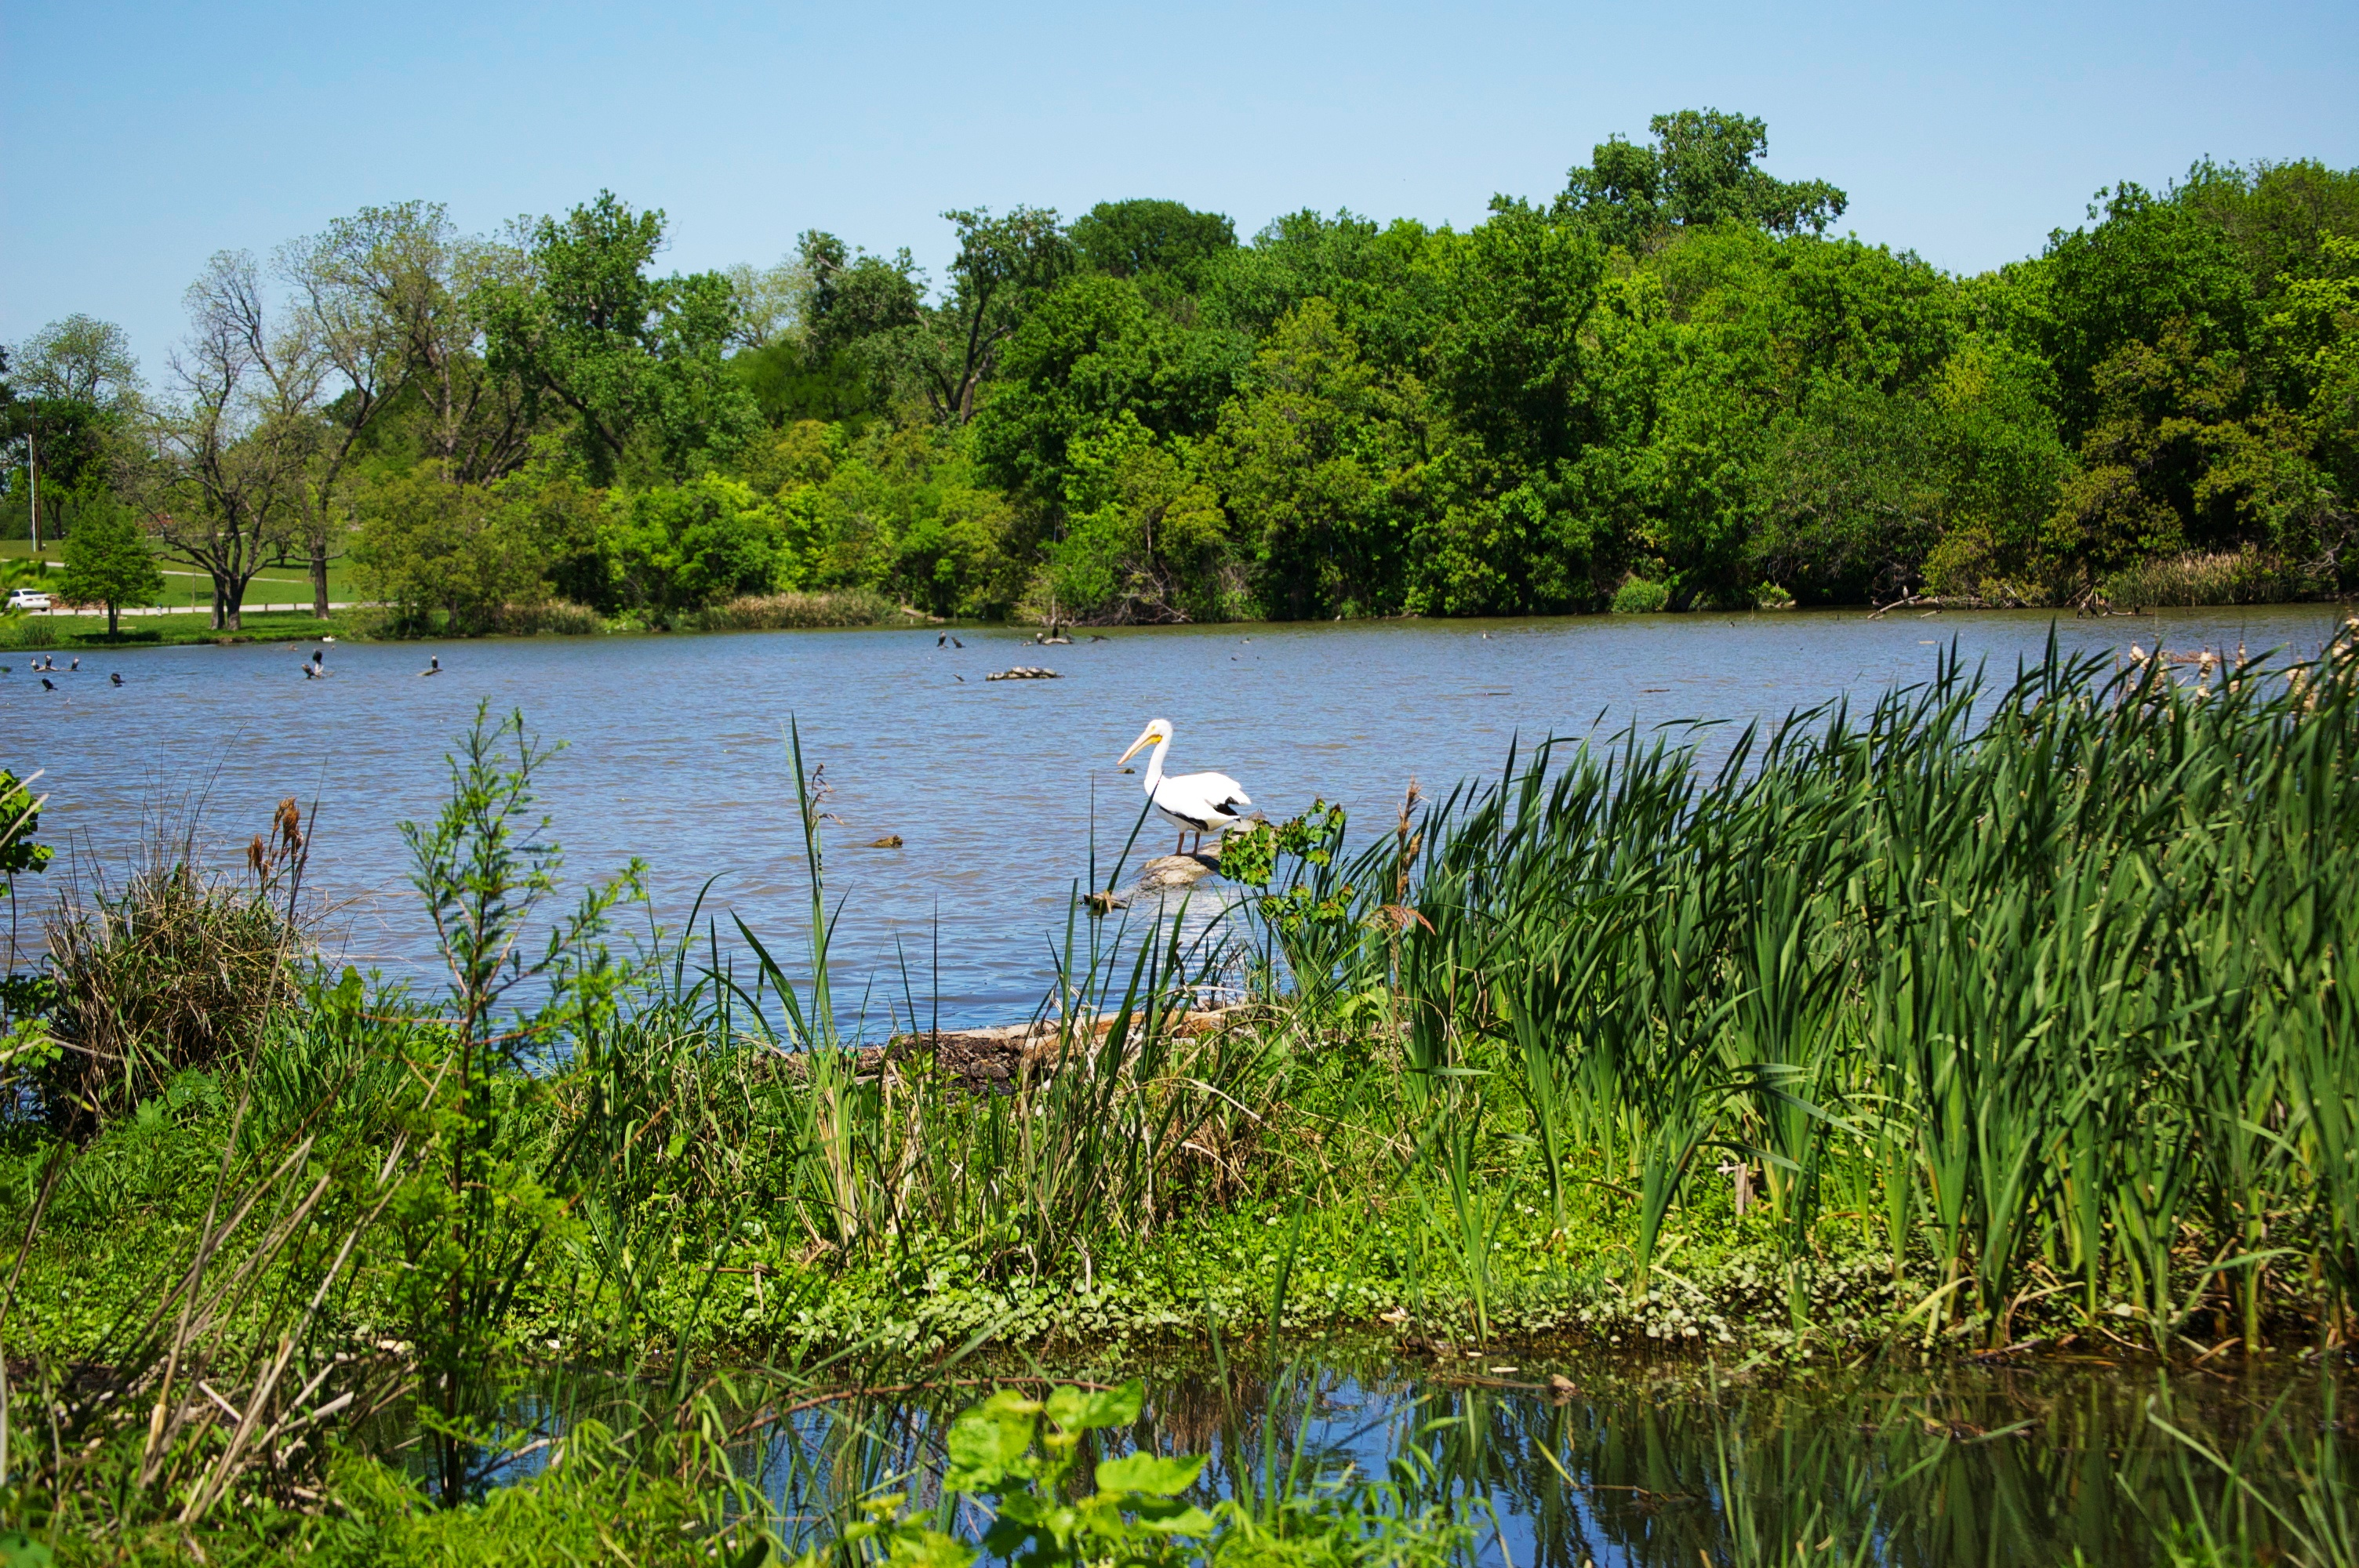 East Fork Reuse Wetland Nursery Created Natural Wildlife Habitat & Improved Water Quality